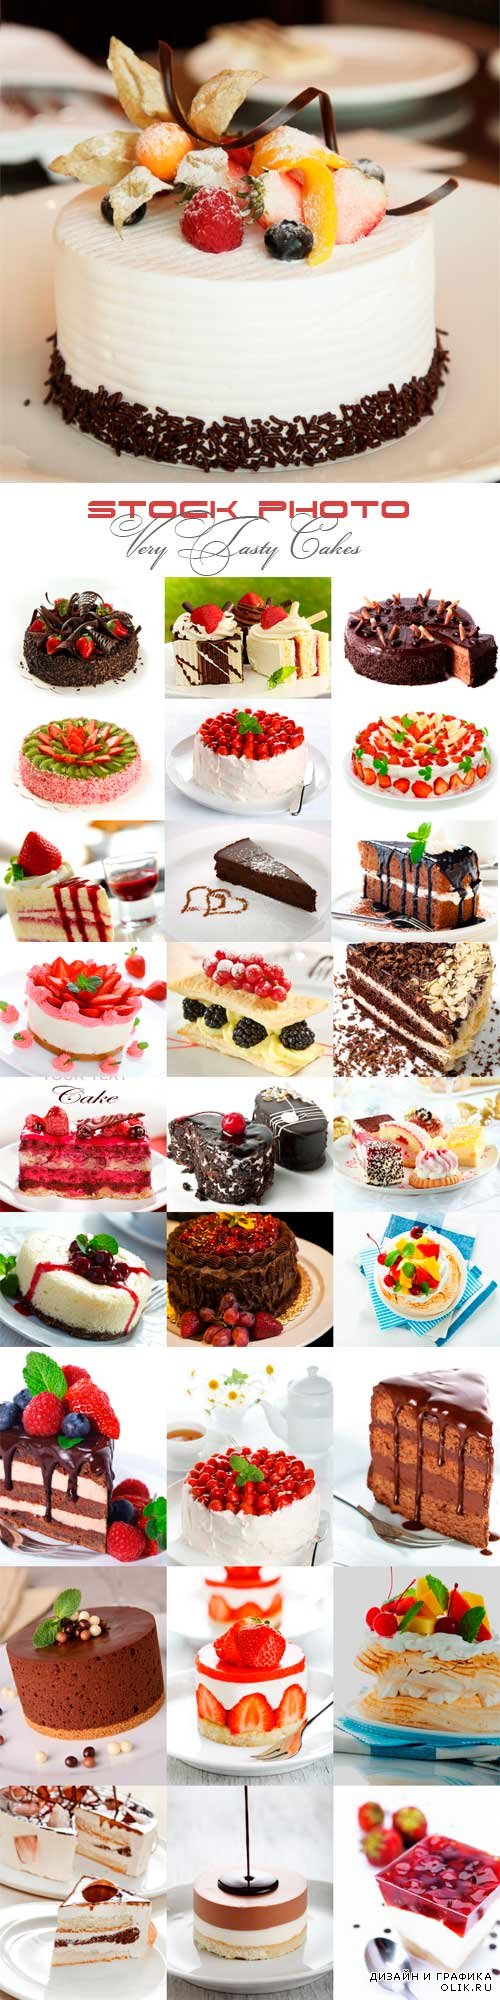 Very tasty cakes raster graphics